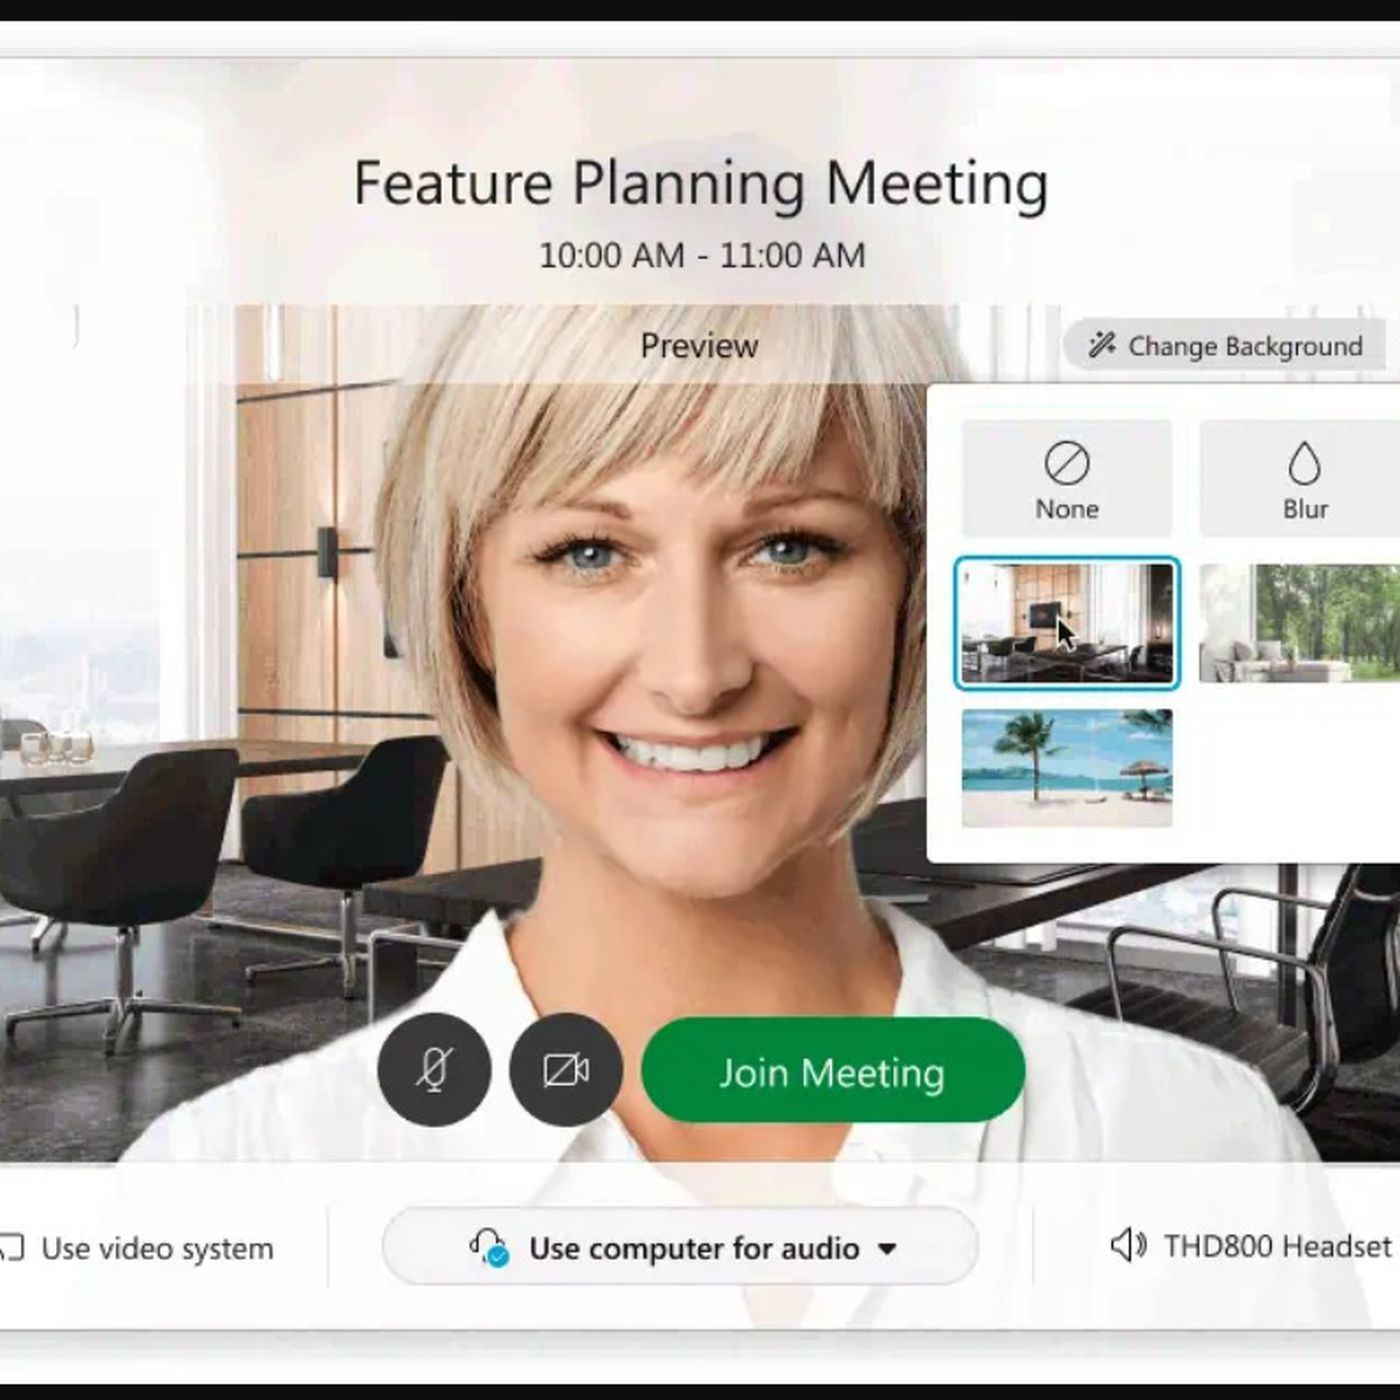 theverge.com - Kim Lyons - Cisco's Webex videoconferencing software now lets you set virtual backgrounds